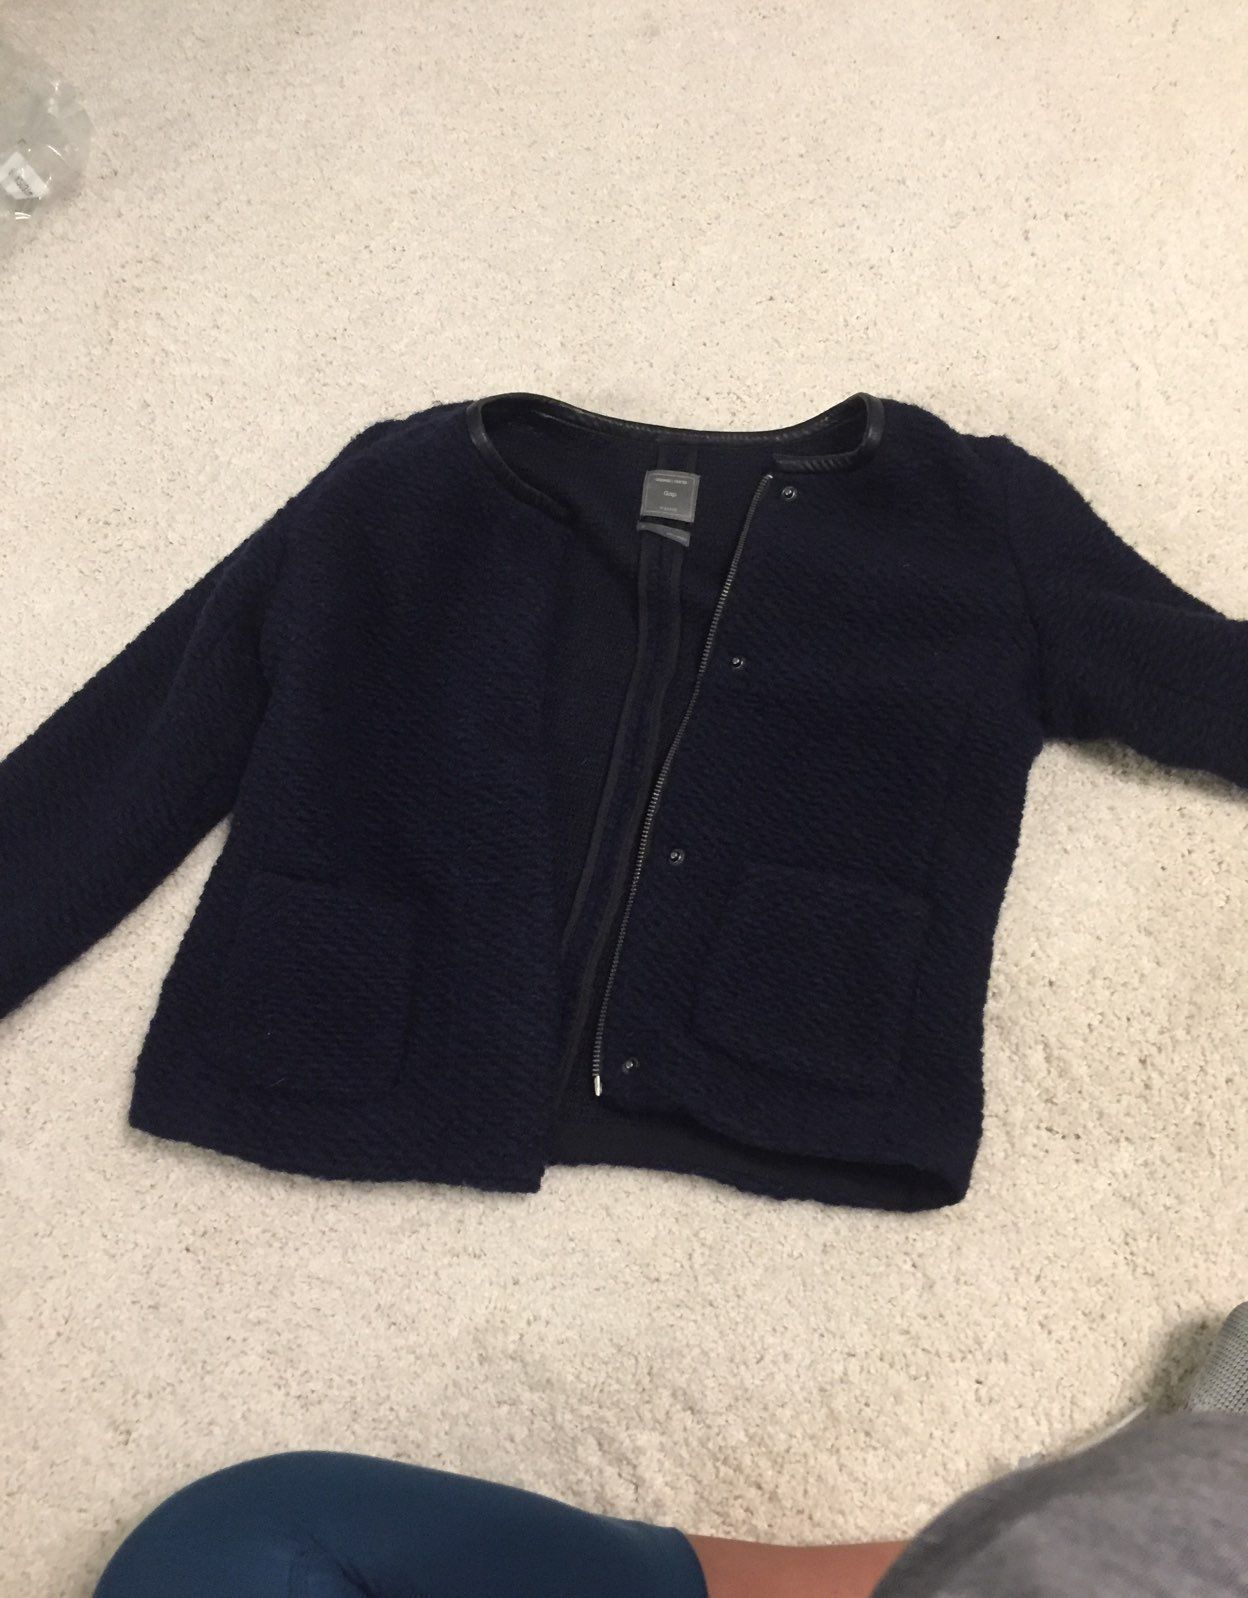 Navy Blue Sweater Jacket - Mercari: BUY & SELL THINGS YOU LOVE